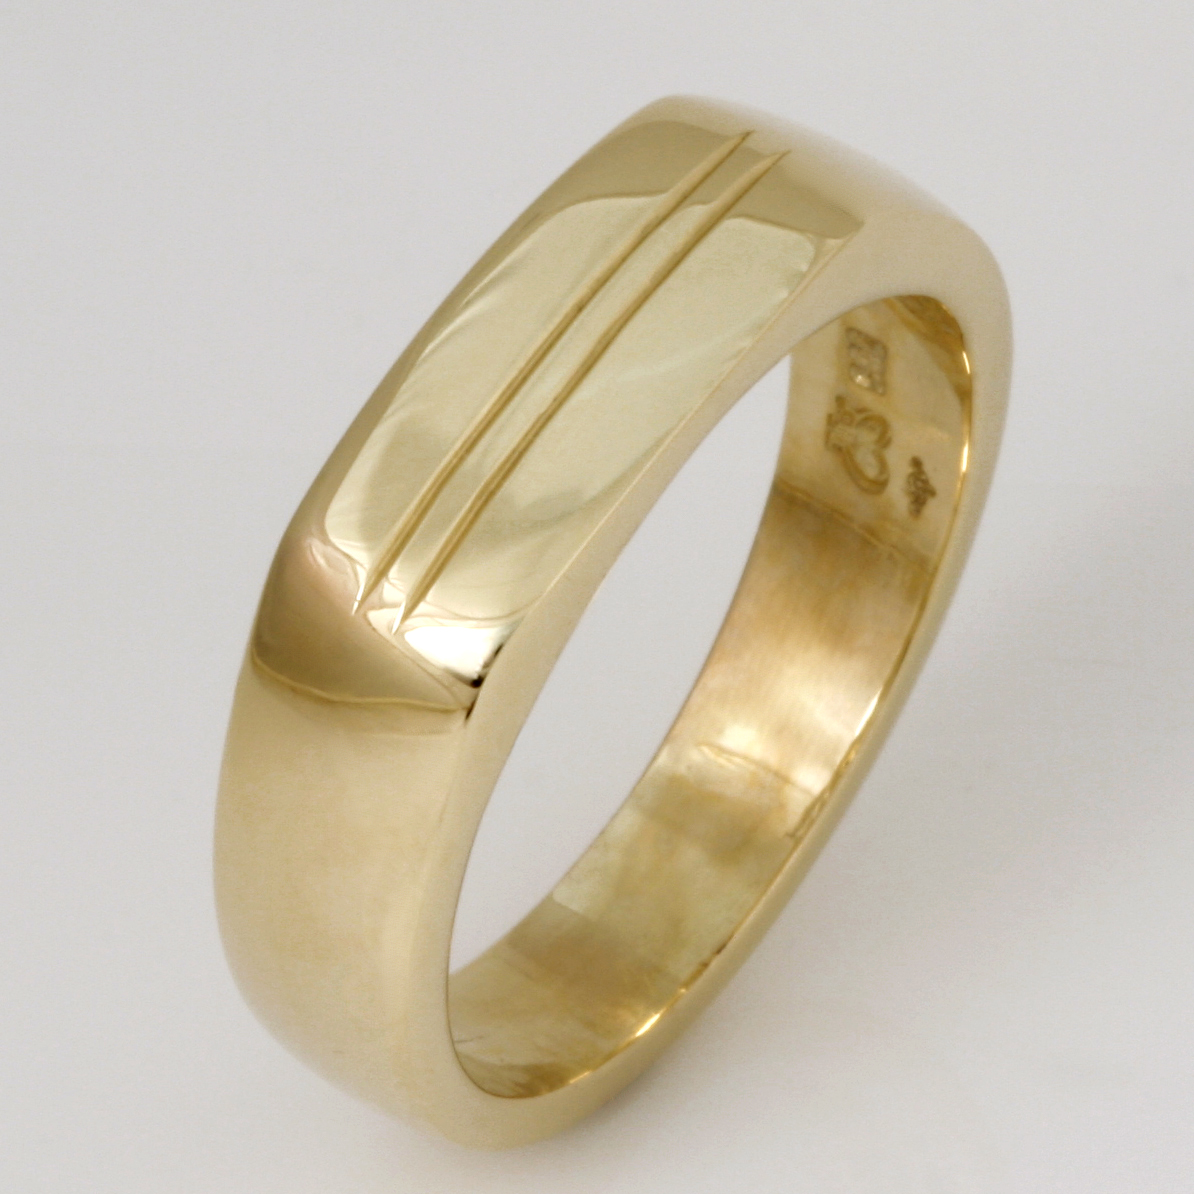 Handmade gents 14ct yellow gold wedding ring